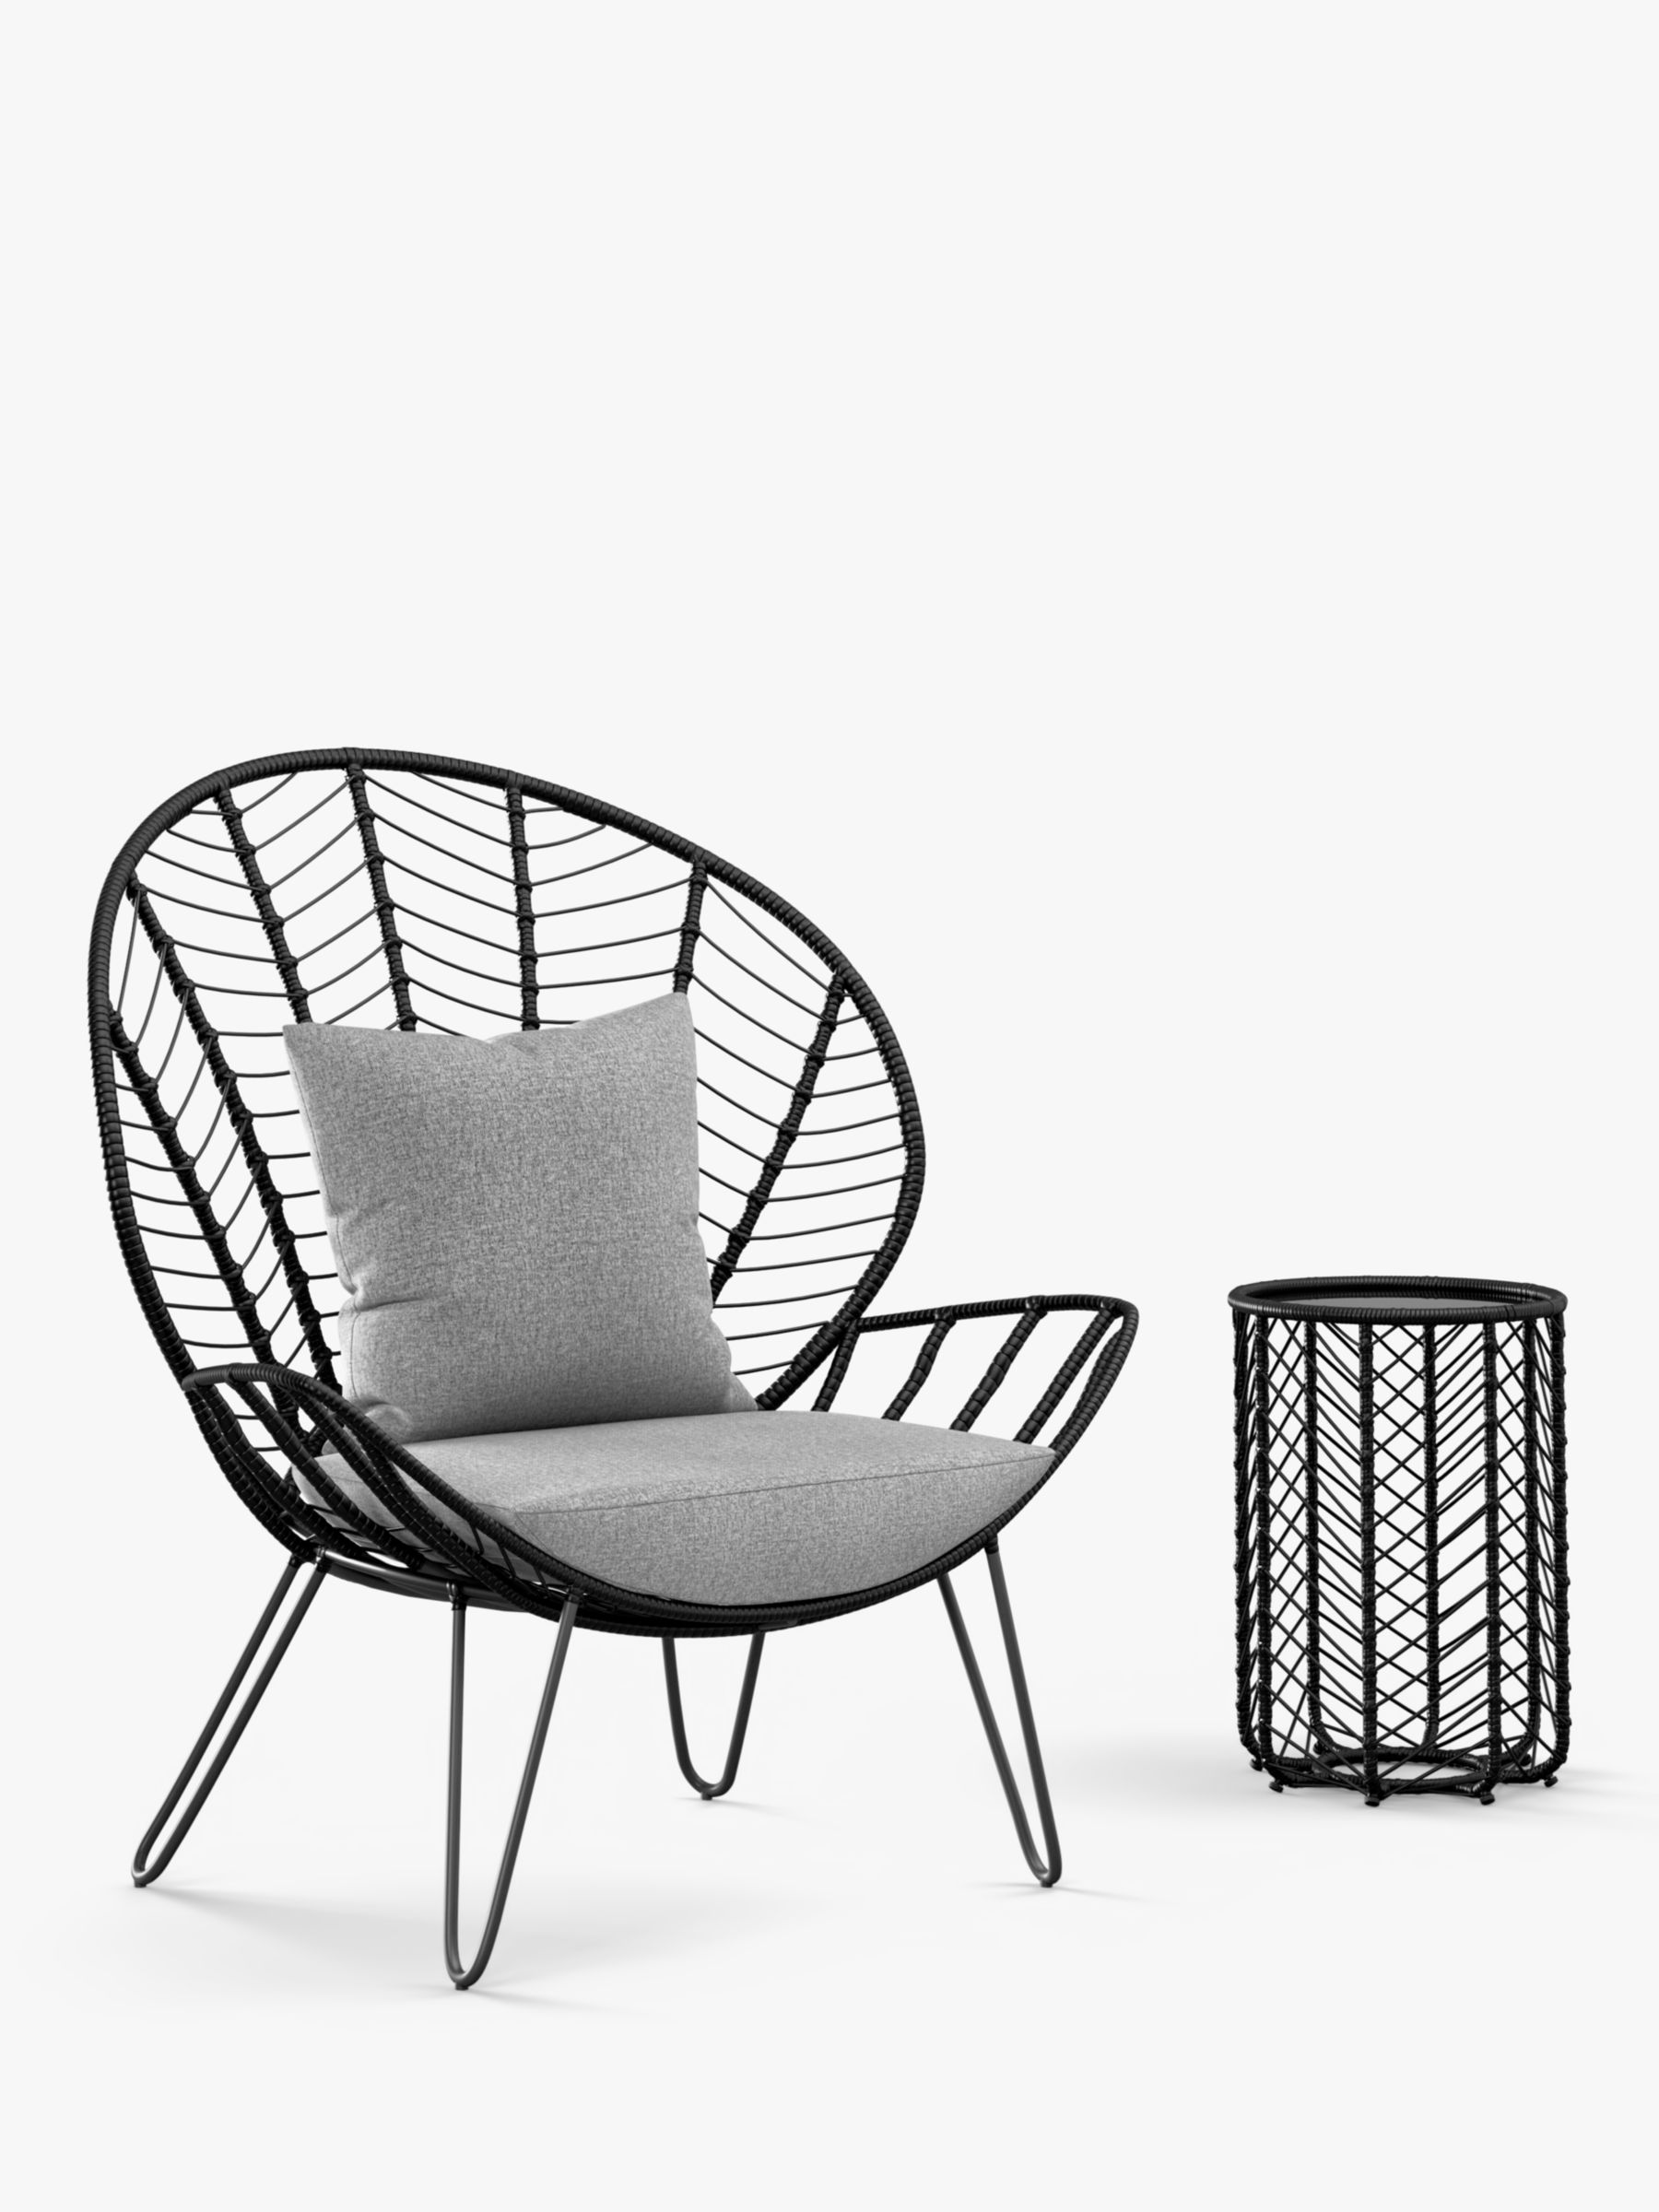 John Lewis & Partners Chevron Statement Garden Chair & Side Table